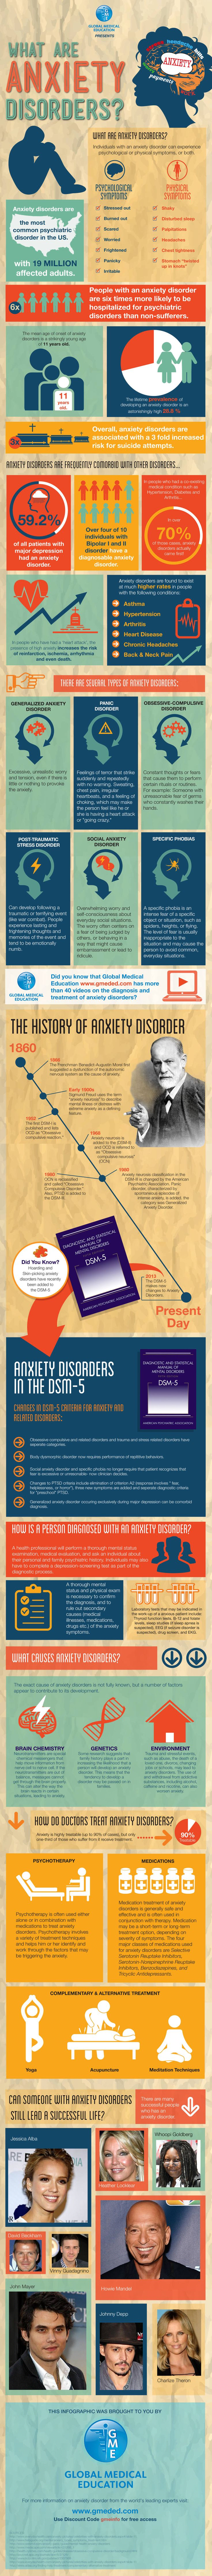 Just what are anxiety disorders anyway? Anxiety disorders are the commonest psychiatric illnesses globally. And while there is no cure for anxiety disorders, there are very effective treatments available with a good evidence base. Includes DSM5 info.